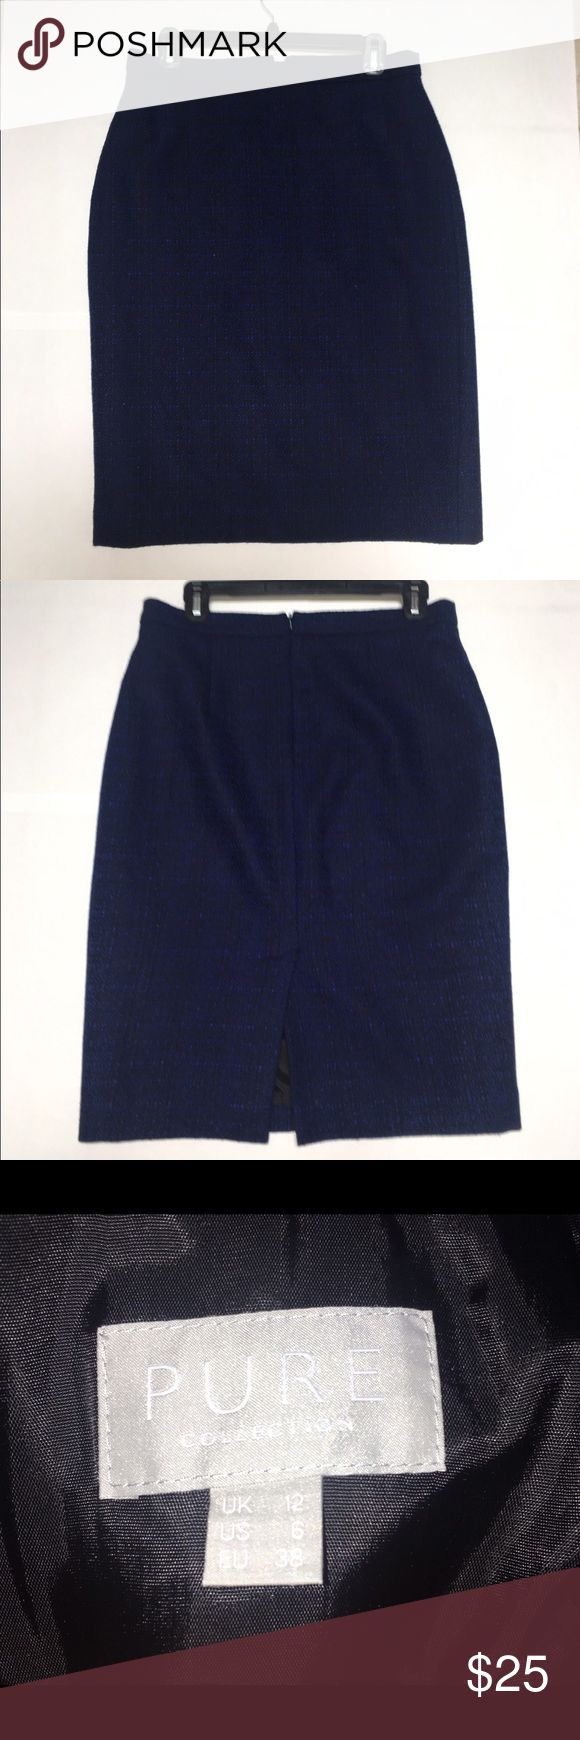 Pure Collection Navy Blue Pencil Skirt This dark blue, wool pencil skirt has black undertones. This skirt is great for work because of its professional silhouette. Pure Collection Skirts Pencil